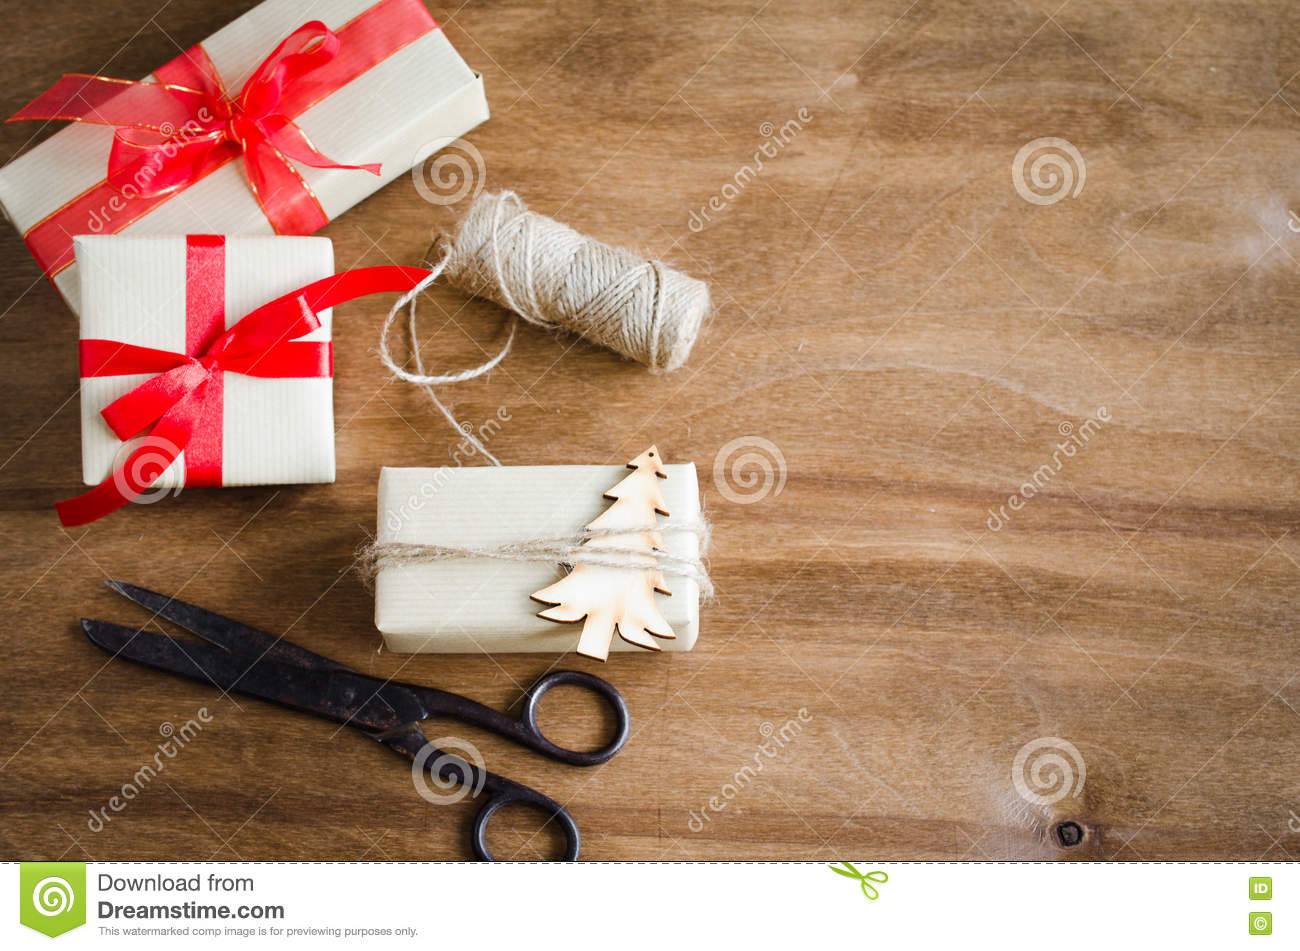 Vintage kraft boxes with gifts, tied with red ribbons and jute with wooden christmas tree on rustic background.